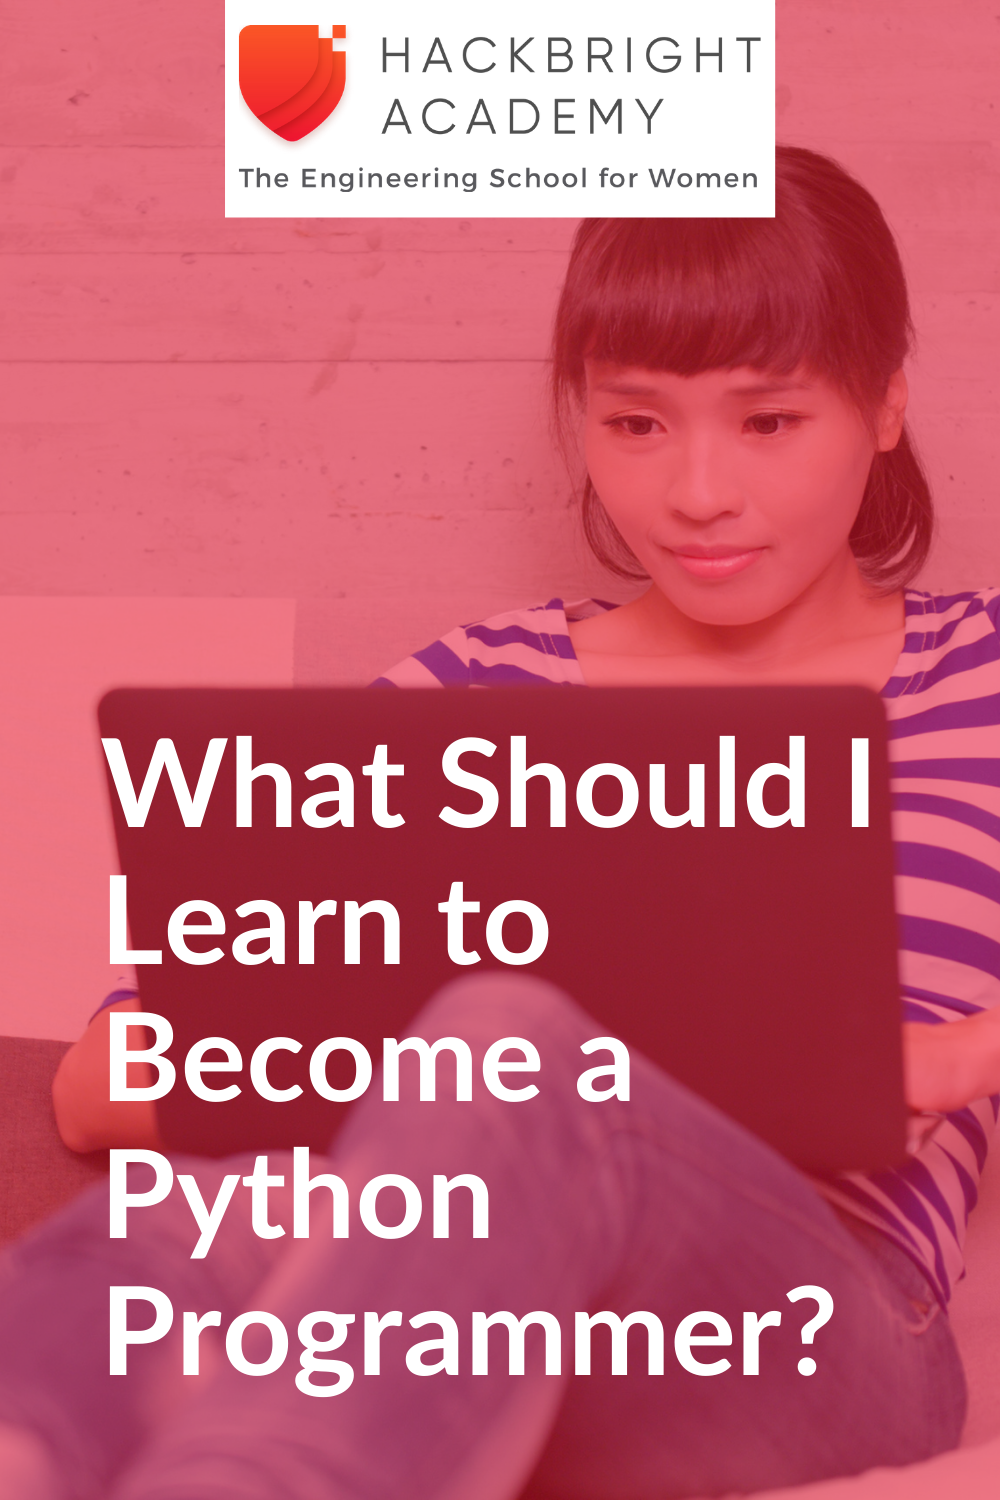 What Should I Learn to Become a Python Programmer?